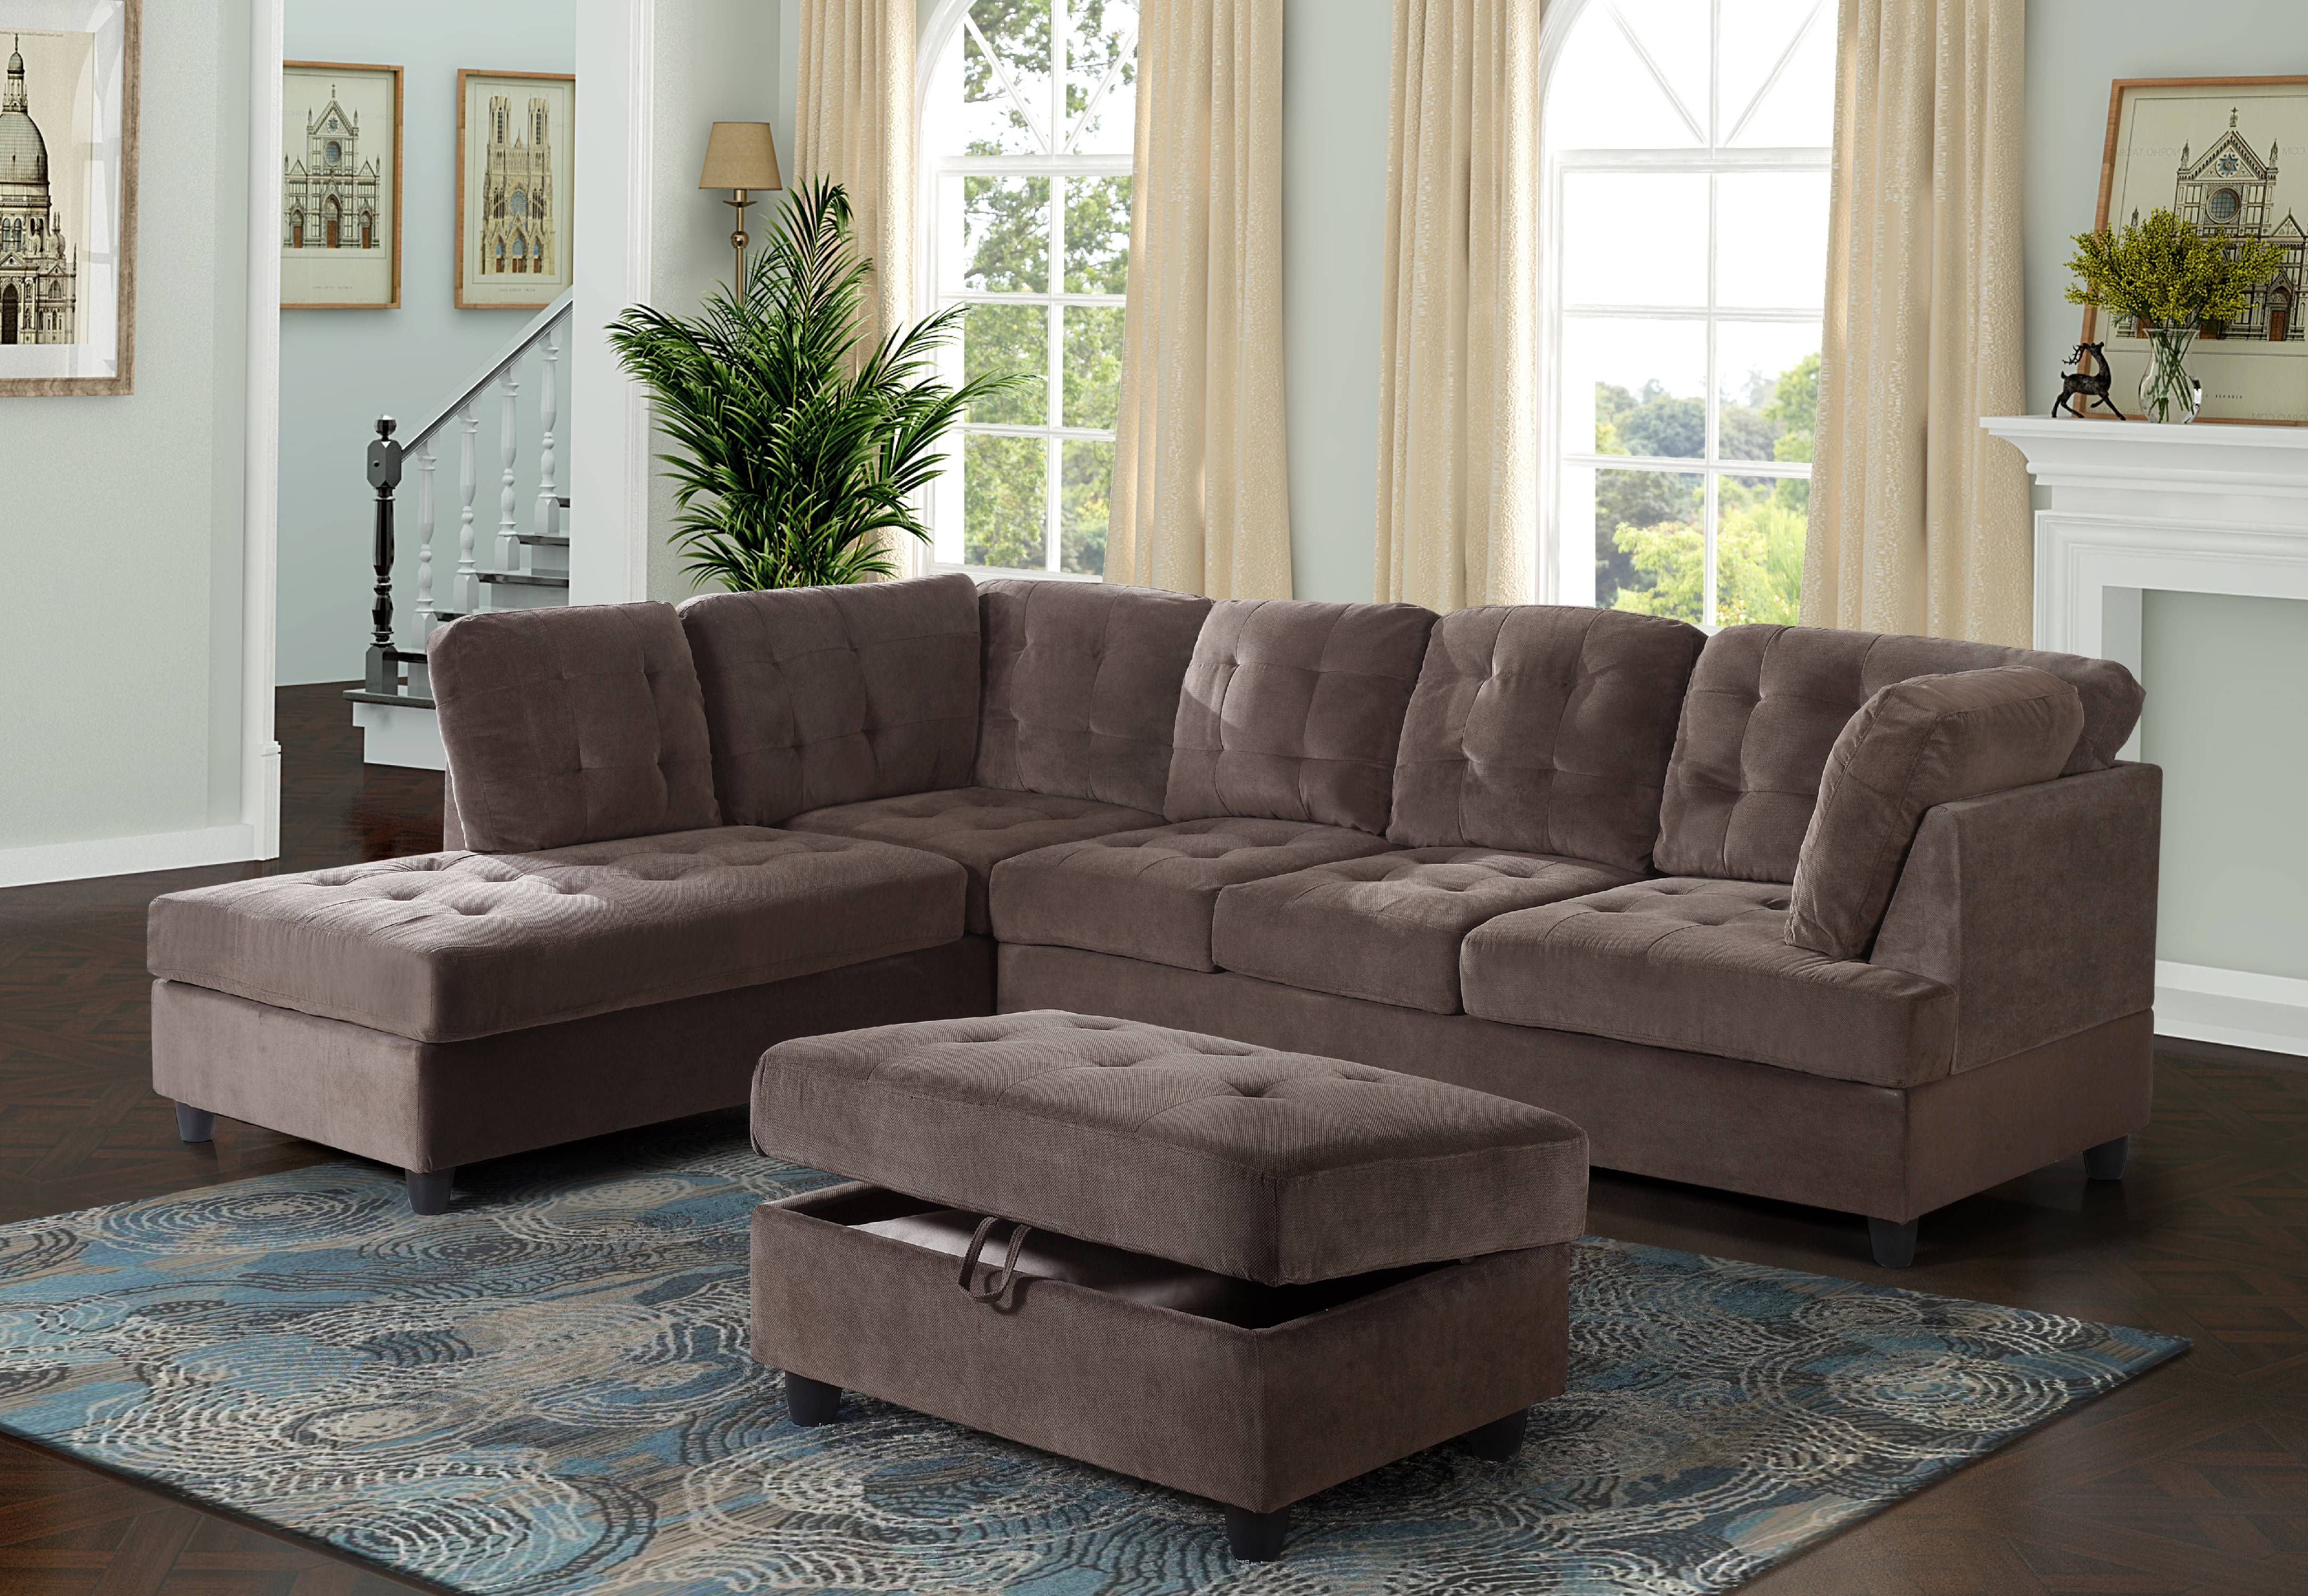 aycp furniture corduroy l shape sectional sofa with storage ottoman espresso left hand facing chaise